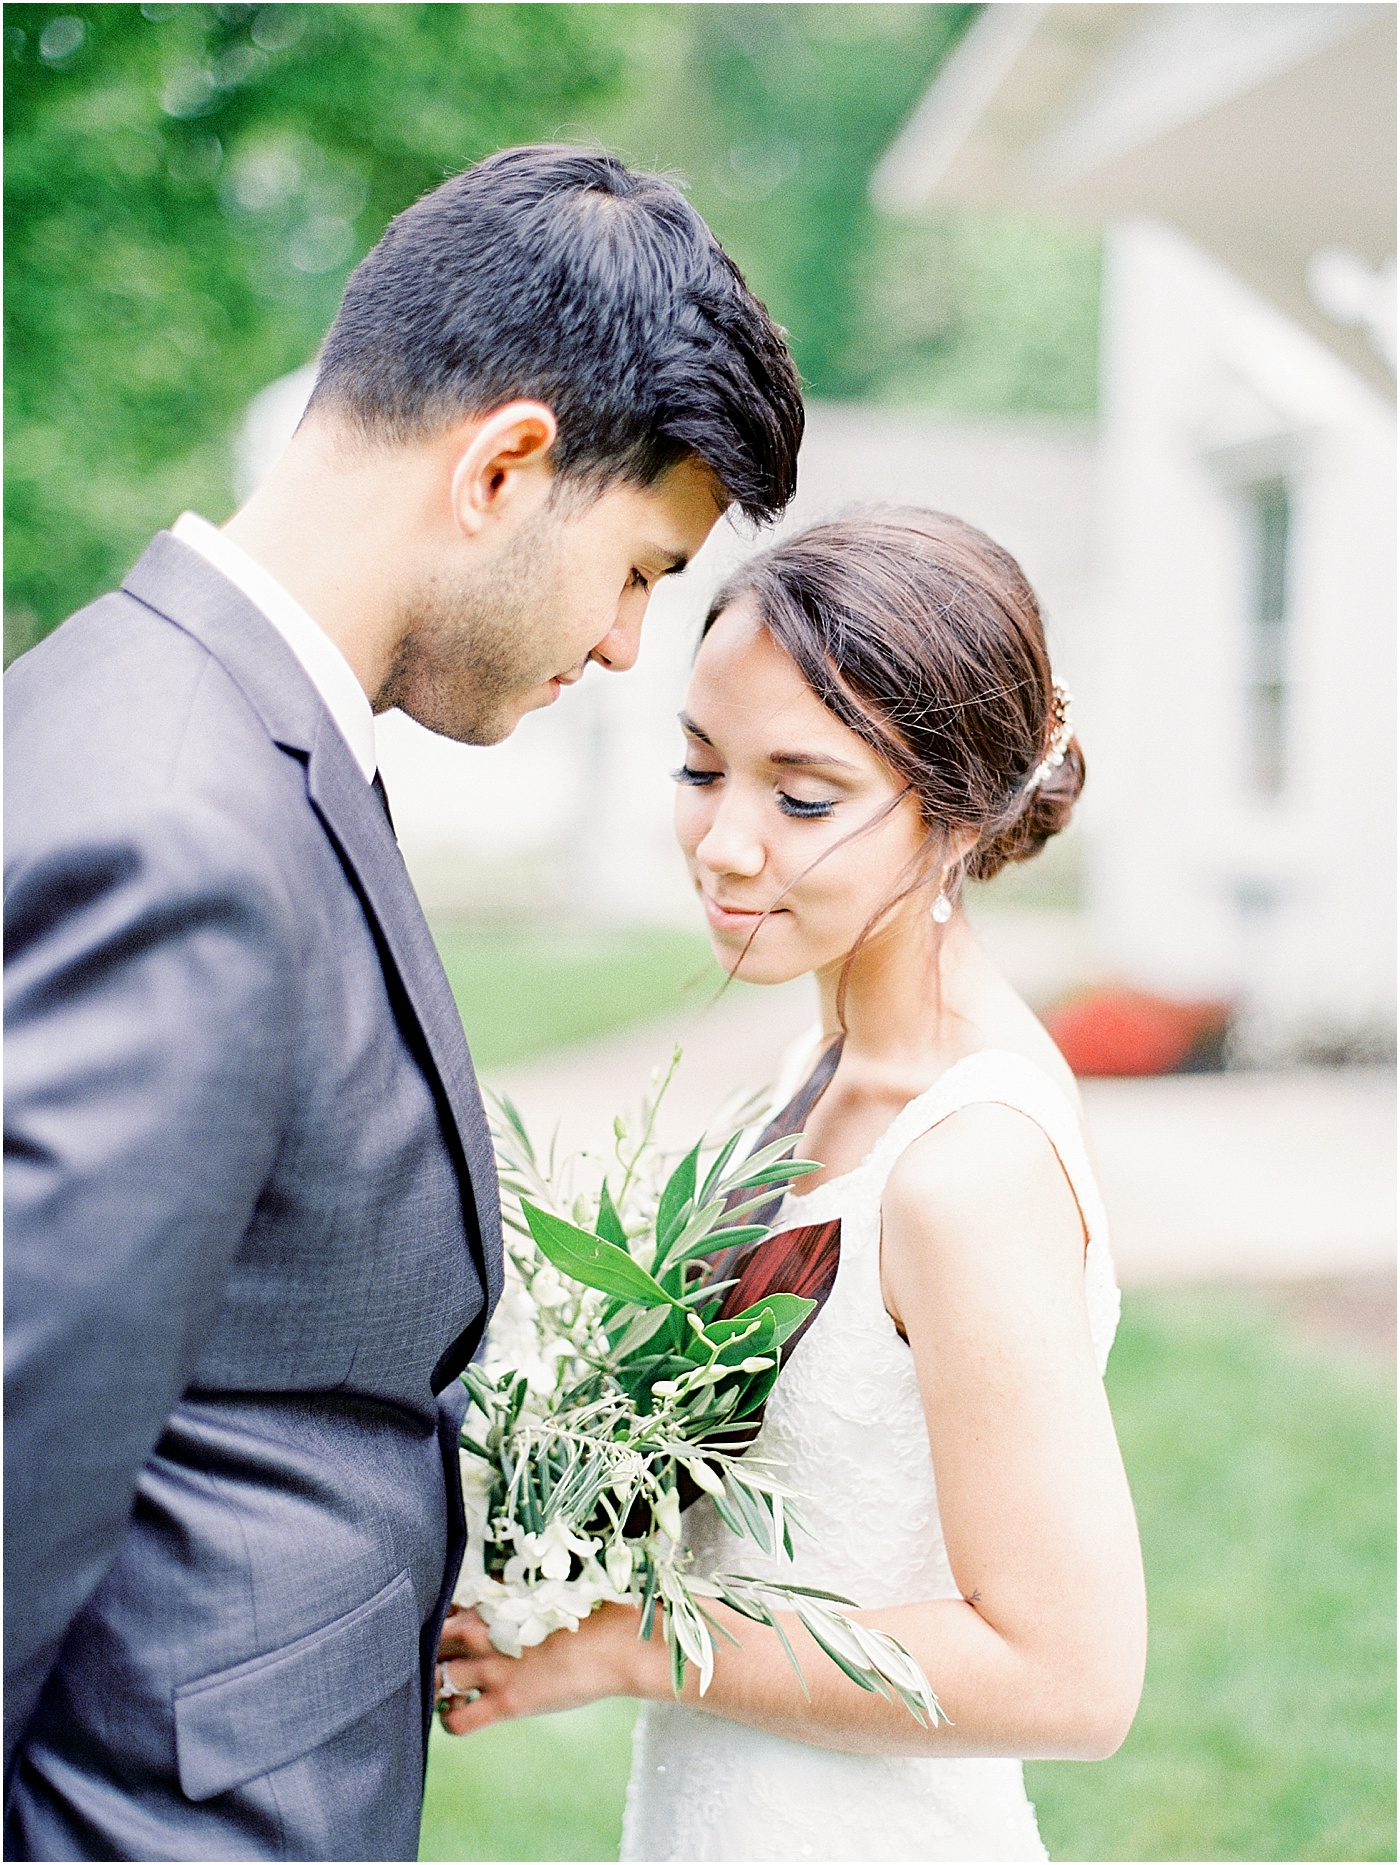 Malvern, PA Wedding by Jordan Brittley Photography